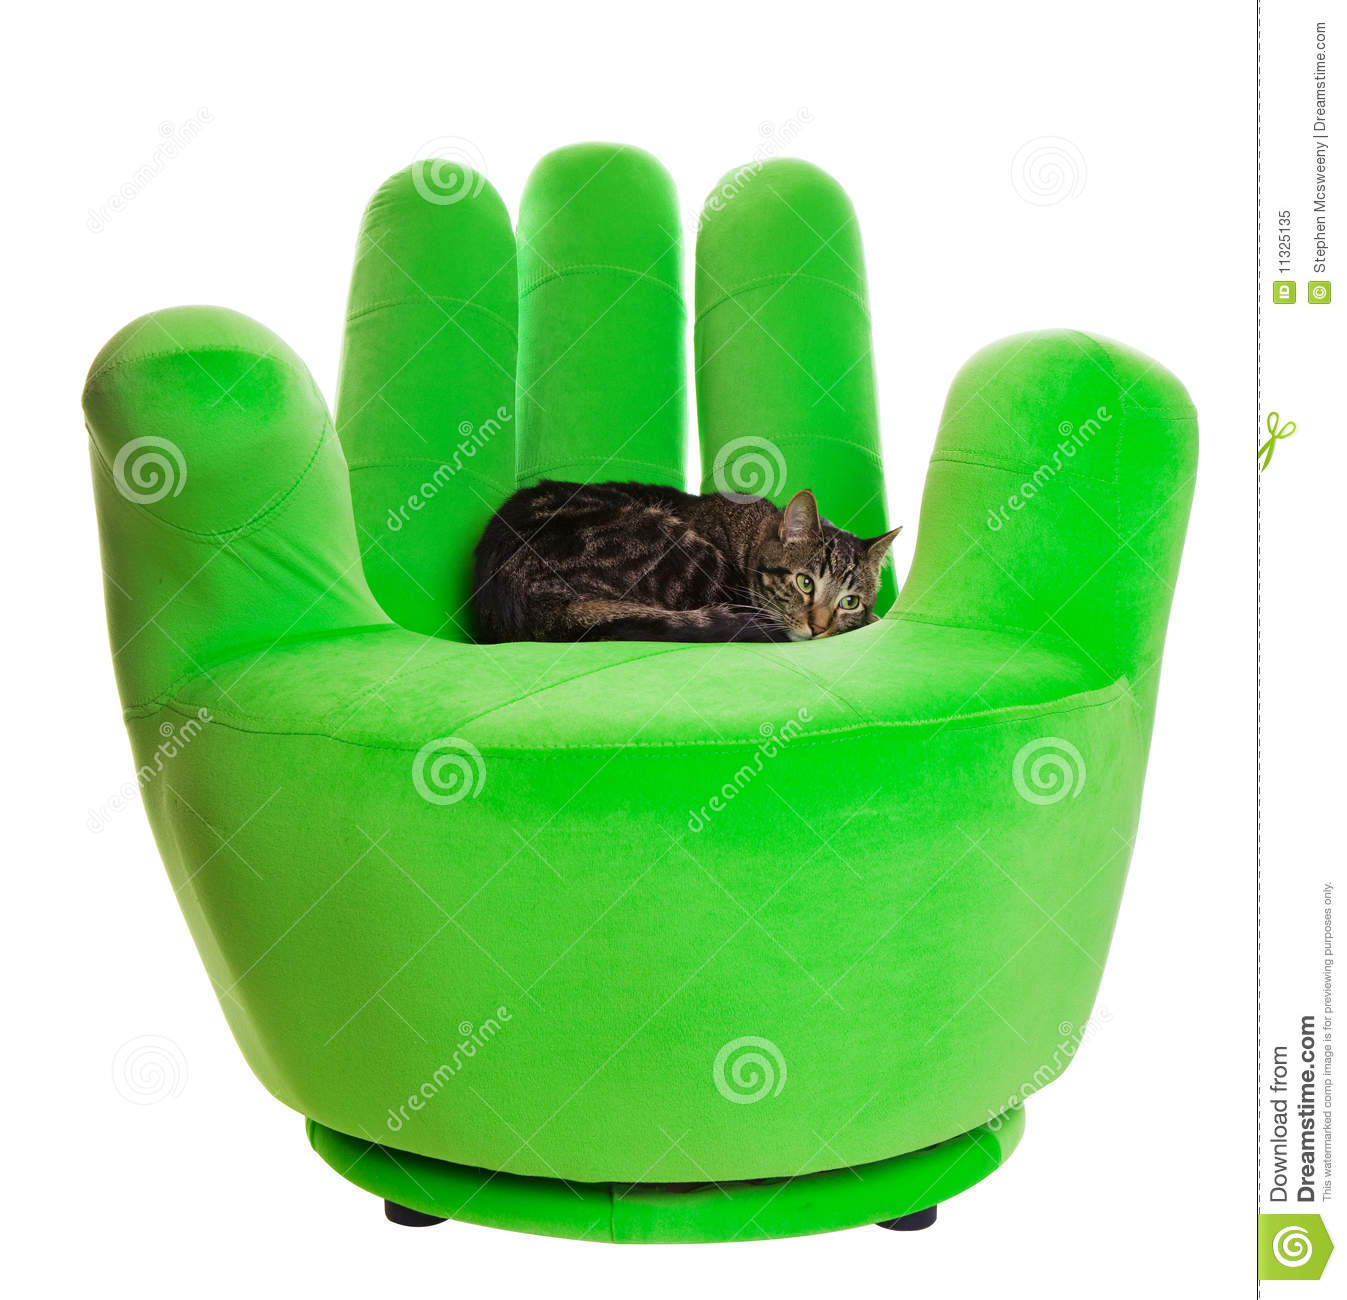 Green Chair Royalty Free Stock Photo - Image: 11325135